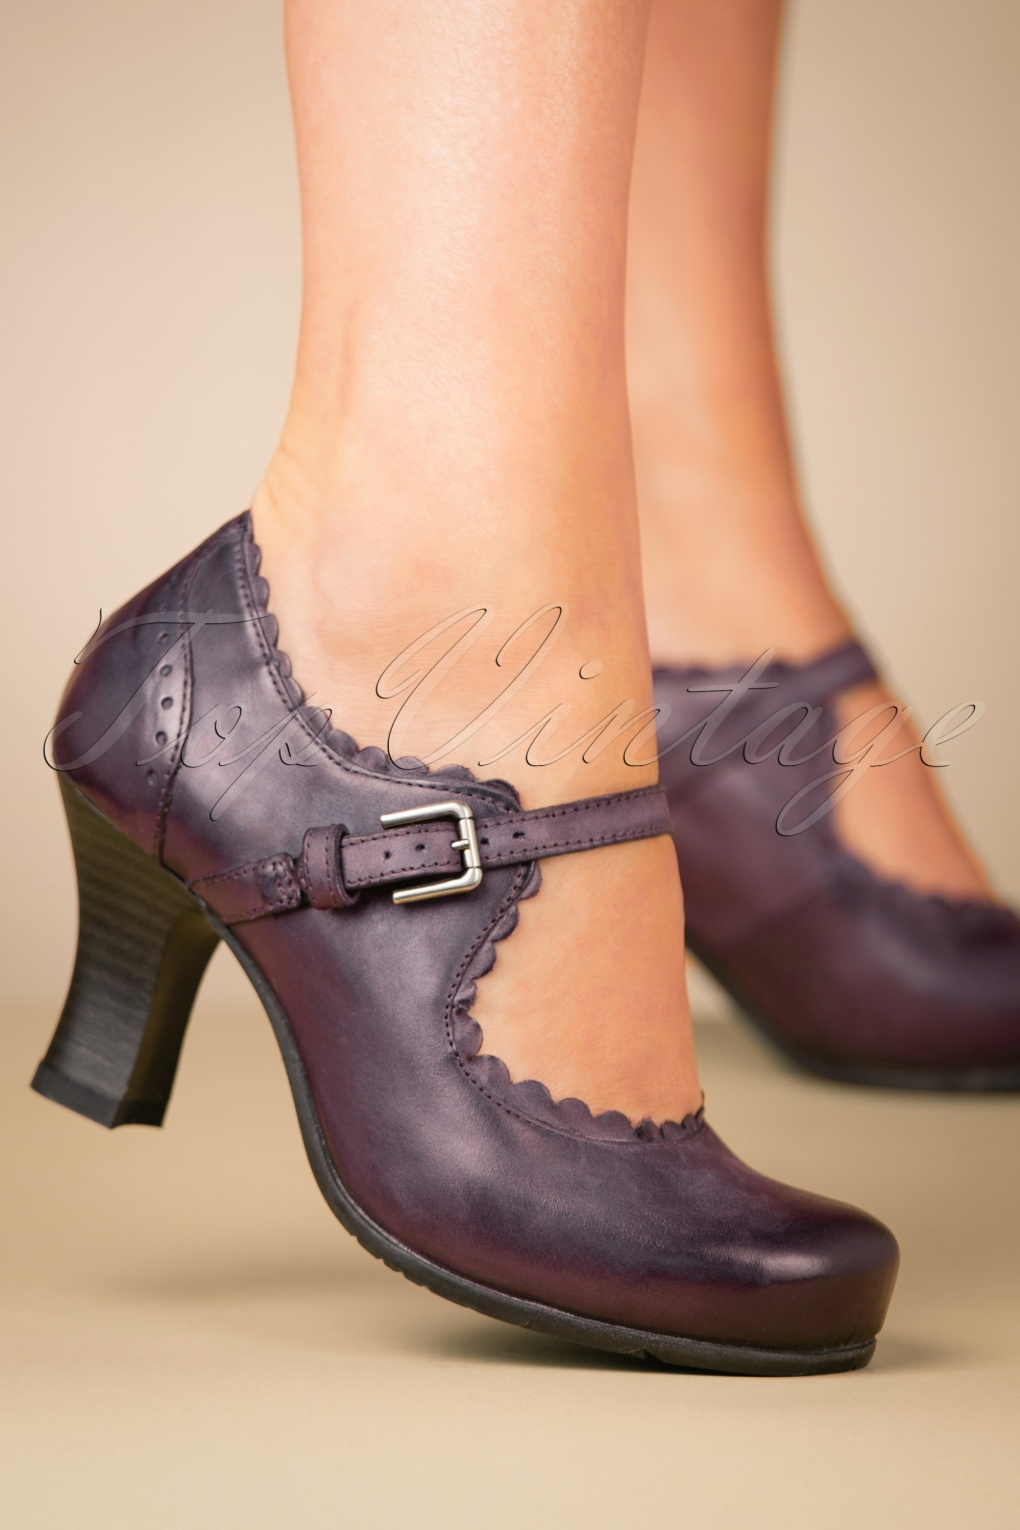 1940s Style Shoes, 40s Shoes 40s Barcelona Leather Mary Jane Pumps in Aubergine £123.86 AT vintagedancer.com